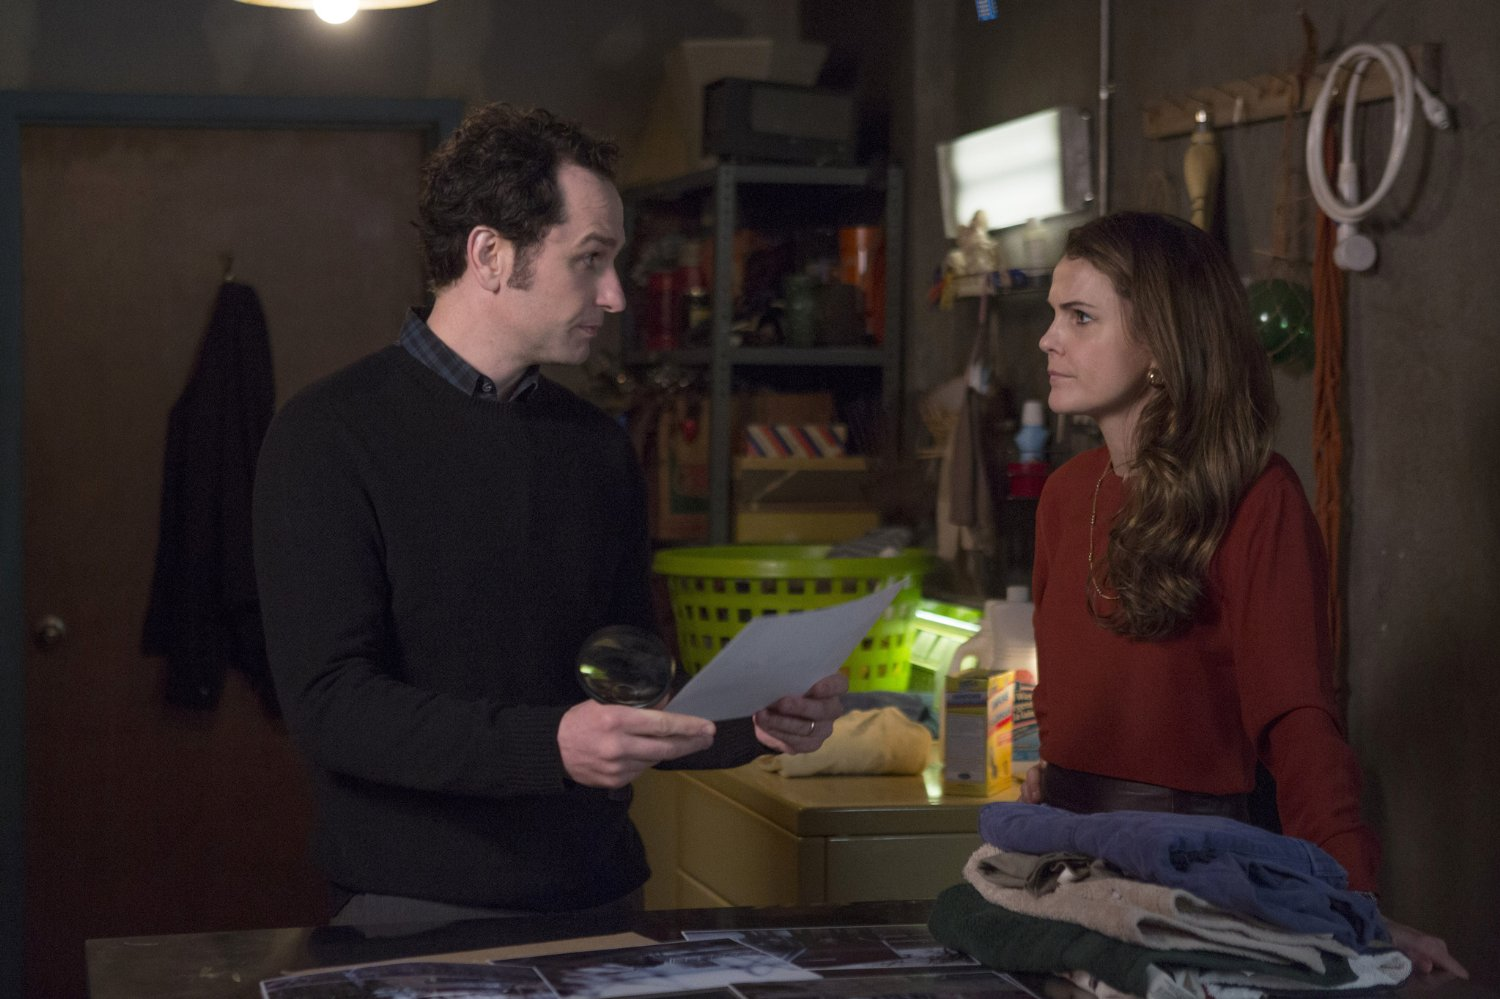 THE AMERICANS Recap: (S05E07) The Committee on Human Rights